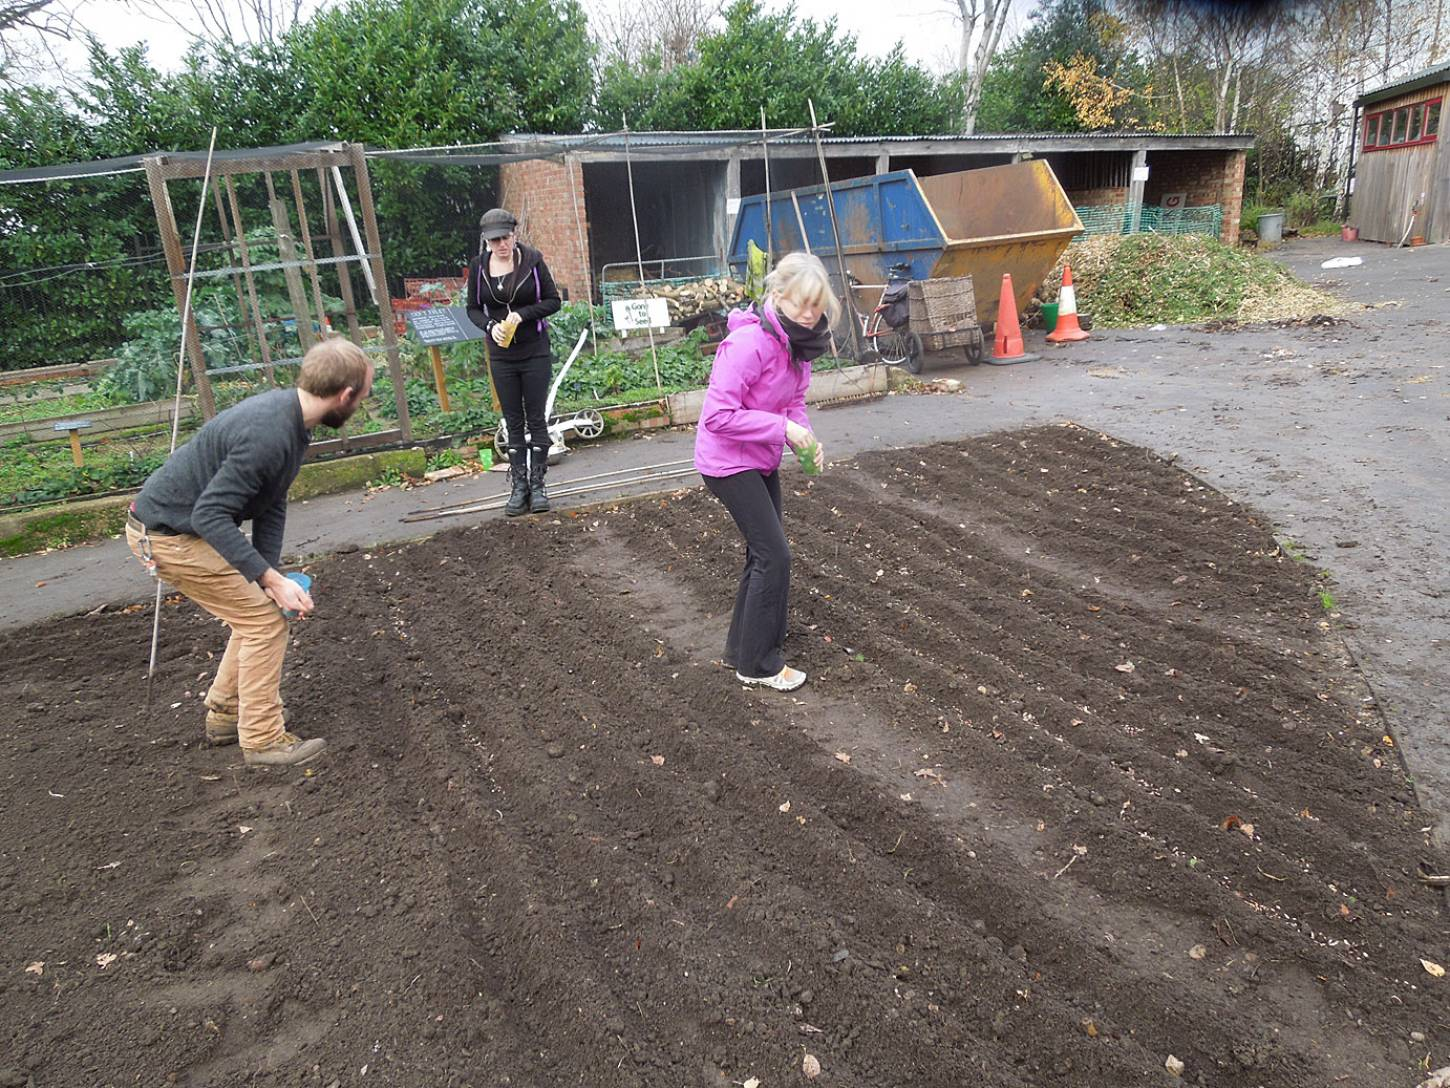 sowing at the <A href='http://www.brockwellgreenhouses.org.uk/welcome/' target=_blank>Brockwell Community Greenhouses</a> - 2:04pm&nbsp;26<sup>th</sup>&nbsp;Nov.&nbsp;'15